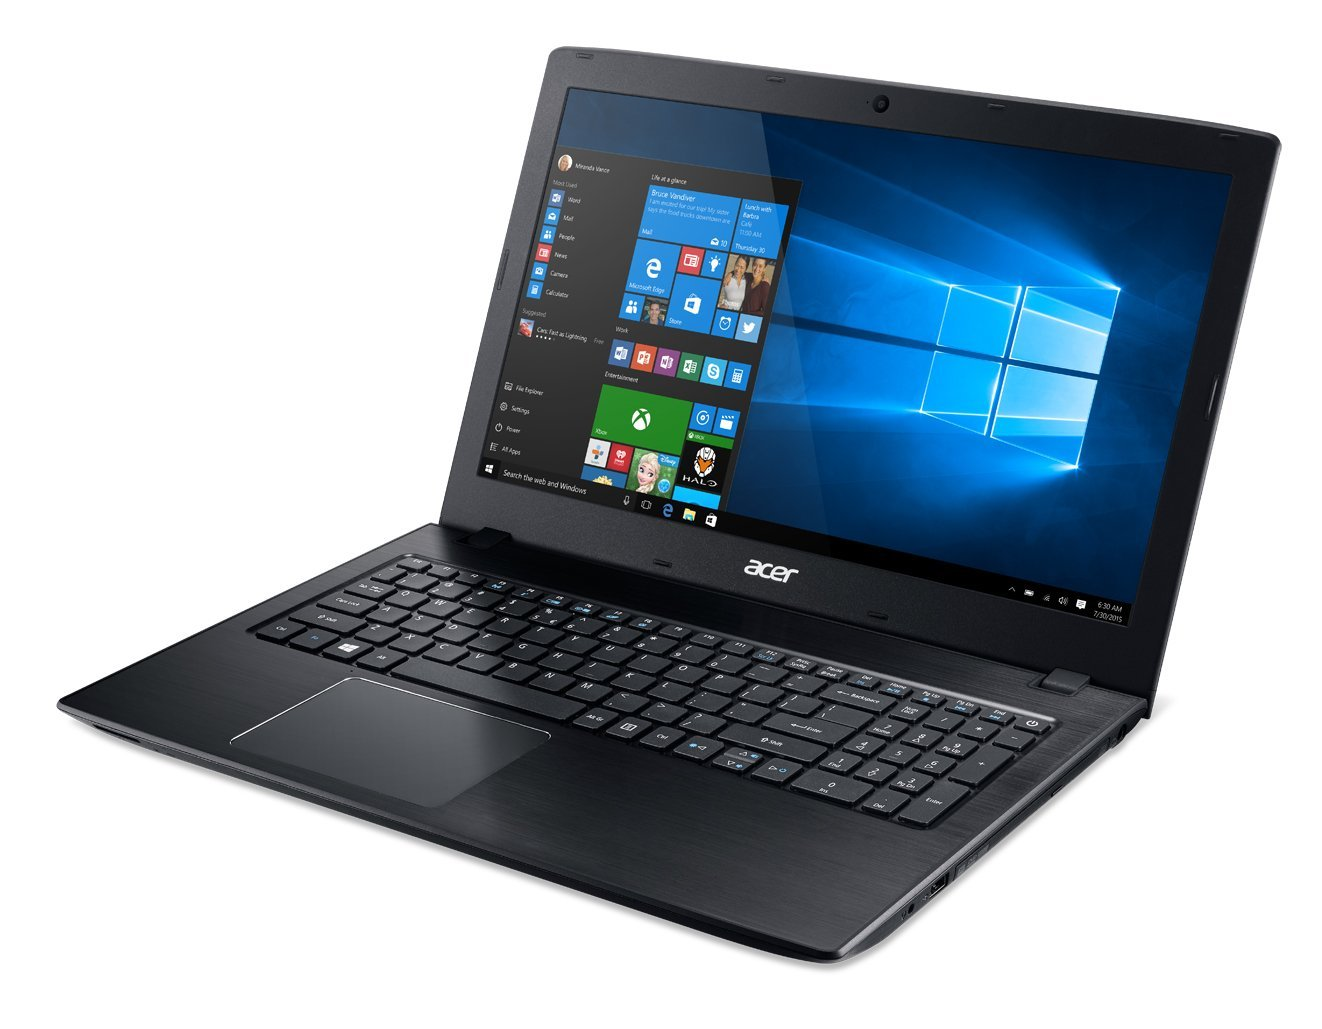 Acer Aspire E 15 E5-575G-53VG Gaming Notebook Review acer aspire e 15 gaming notebook review Acer Aspire E 15 E5-575G-53VG Gaming Notebook Review 72072cd21f23850fd13a7ce8556a8288